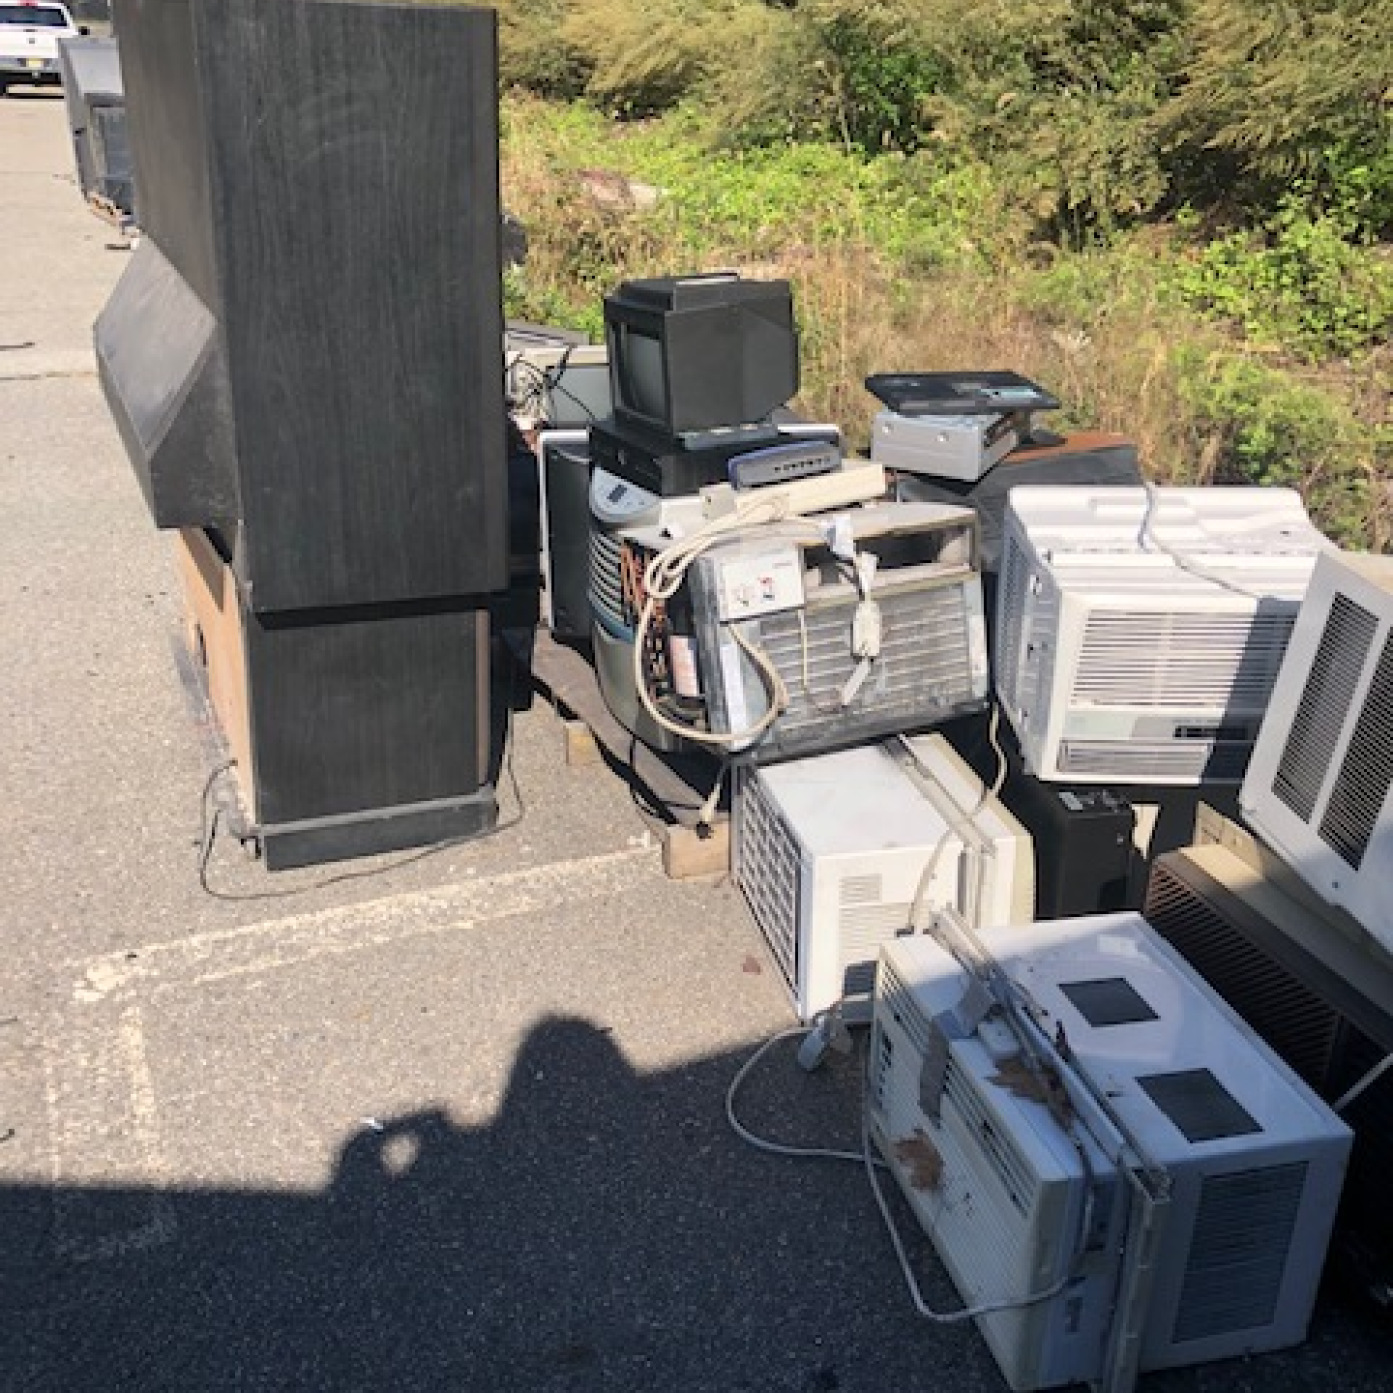 E-waste awaiting to be recycled